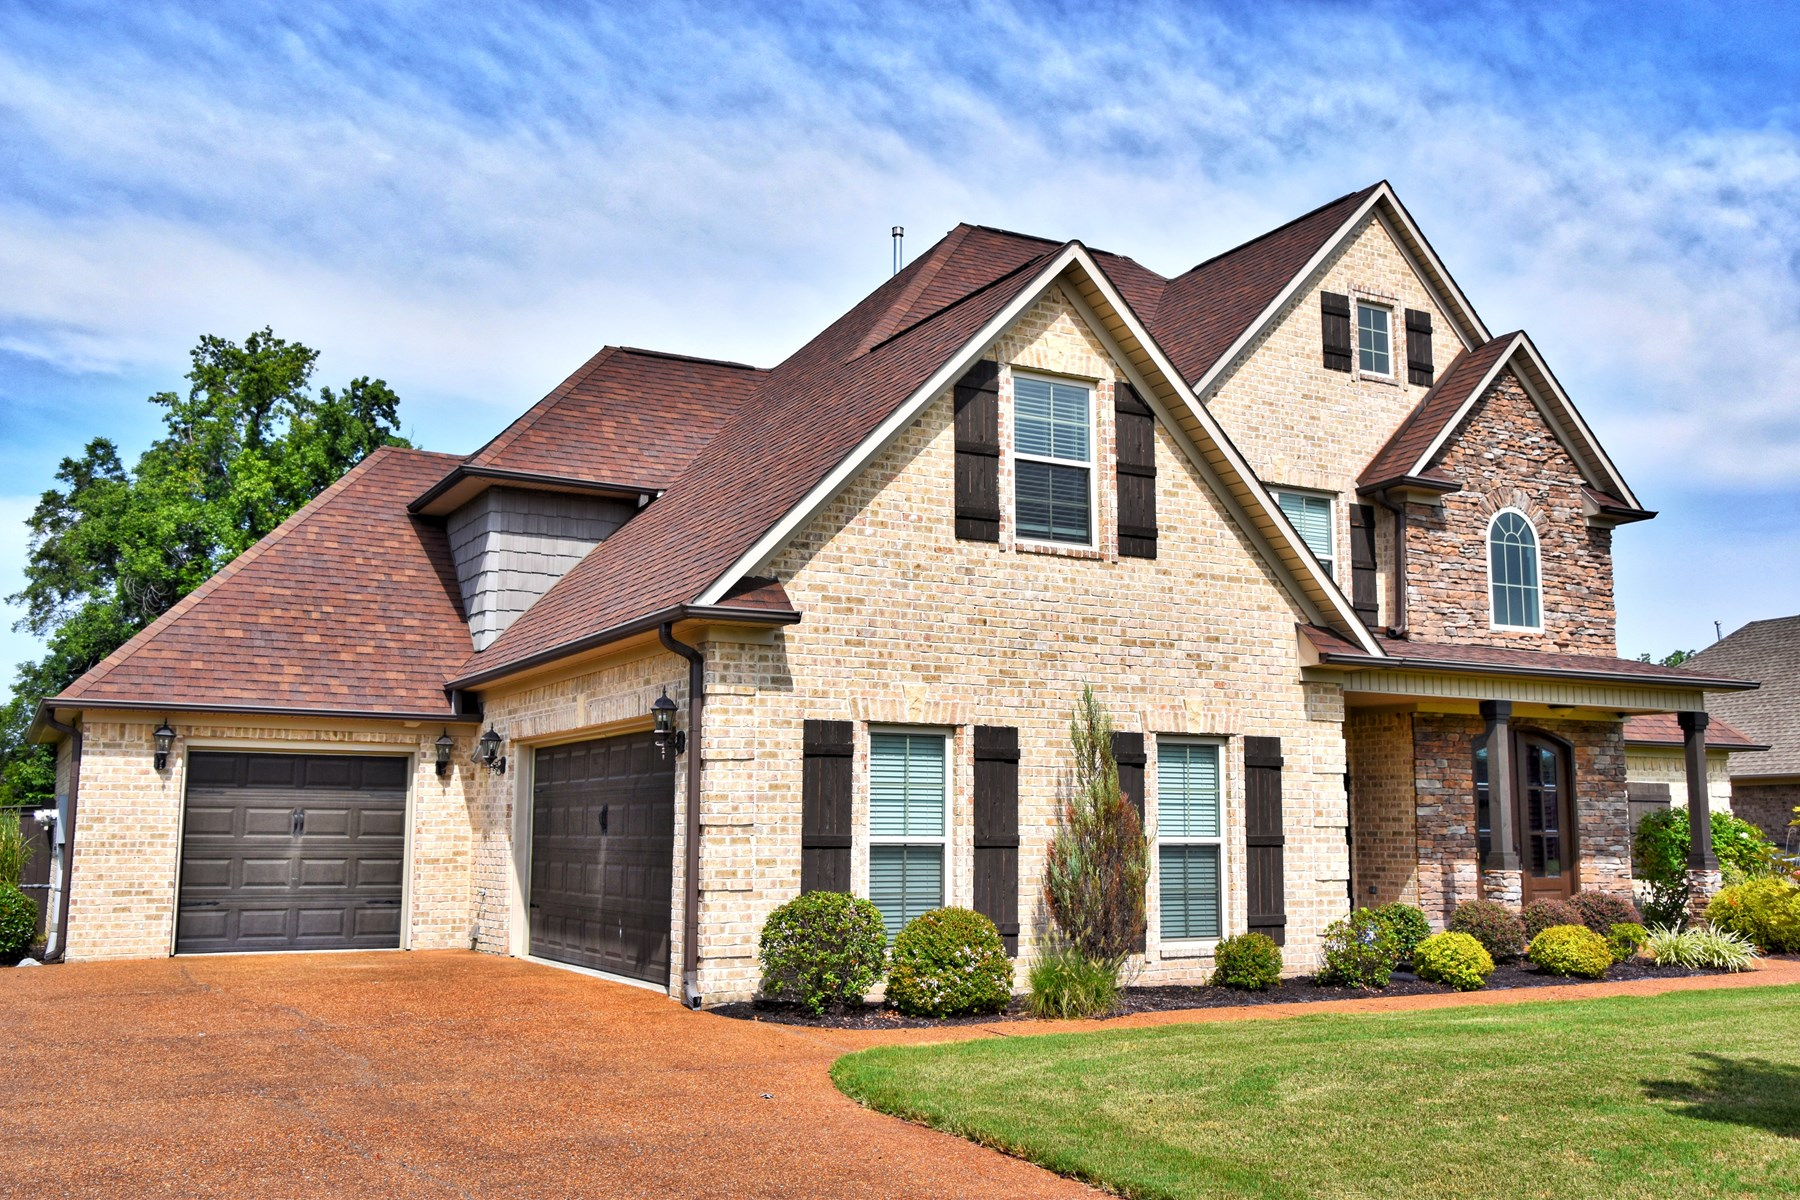 Wrights Mill Custom 5 BR 3 BA Home for Sale, Pond, Shop area